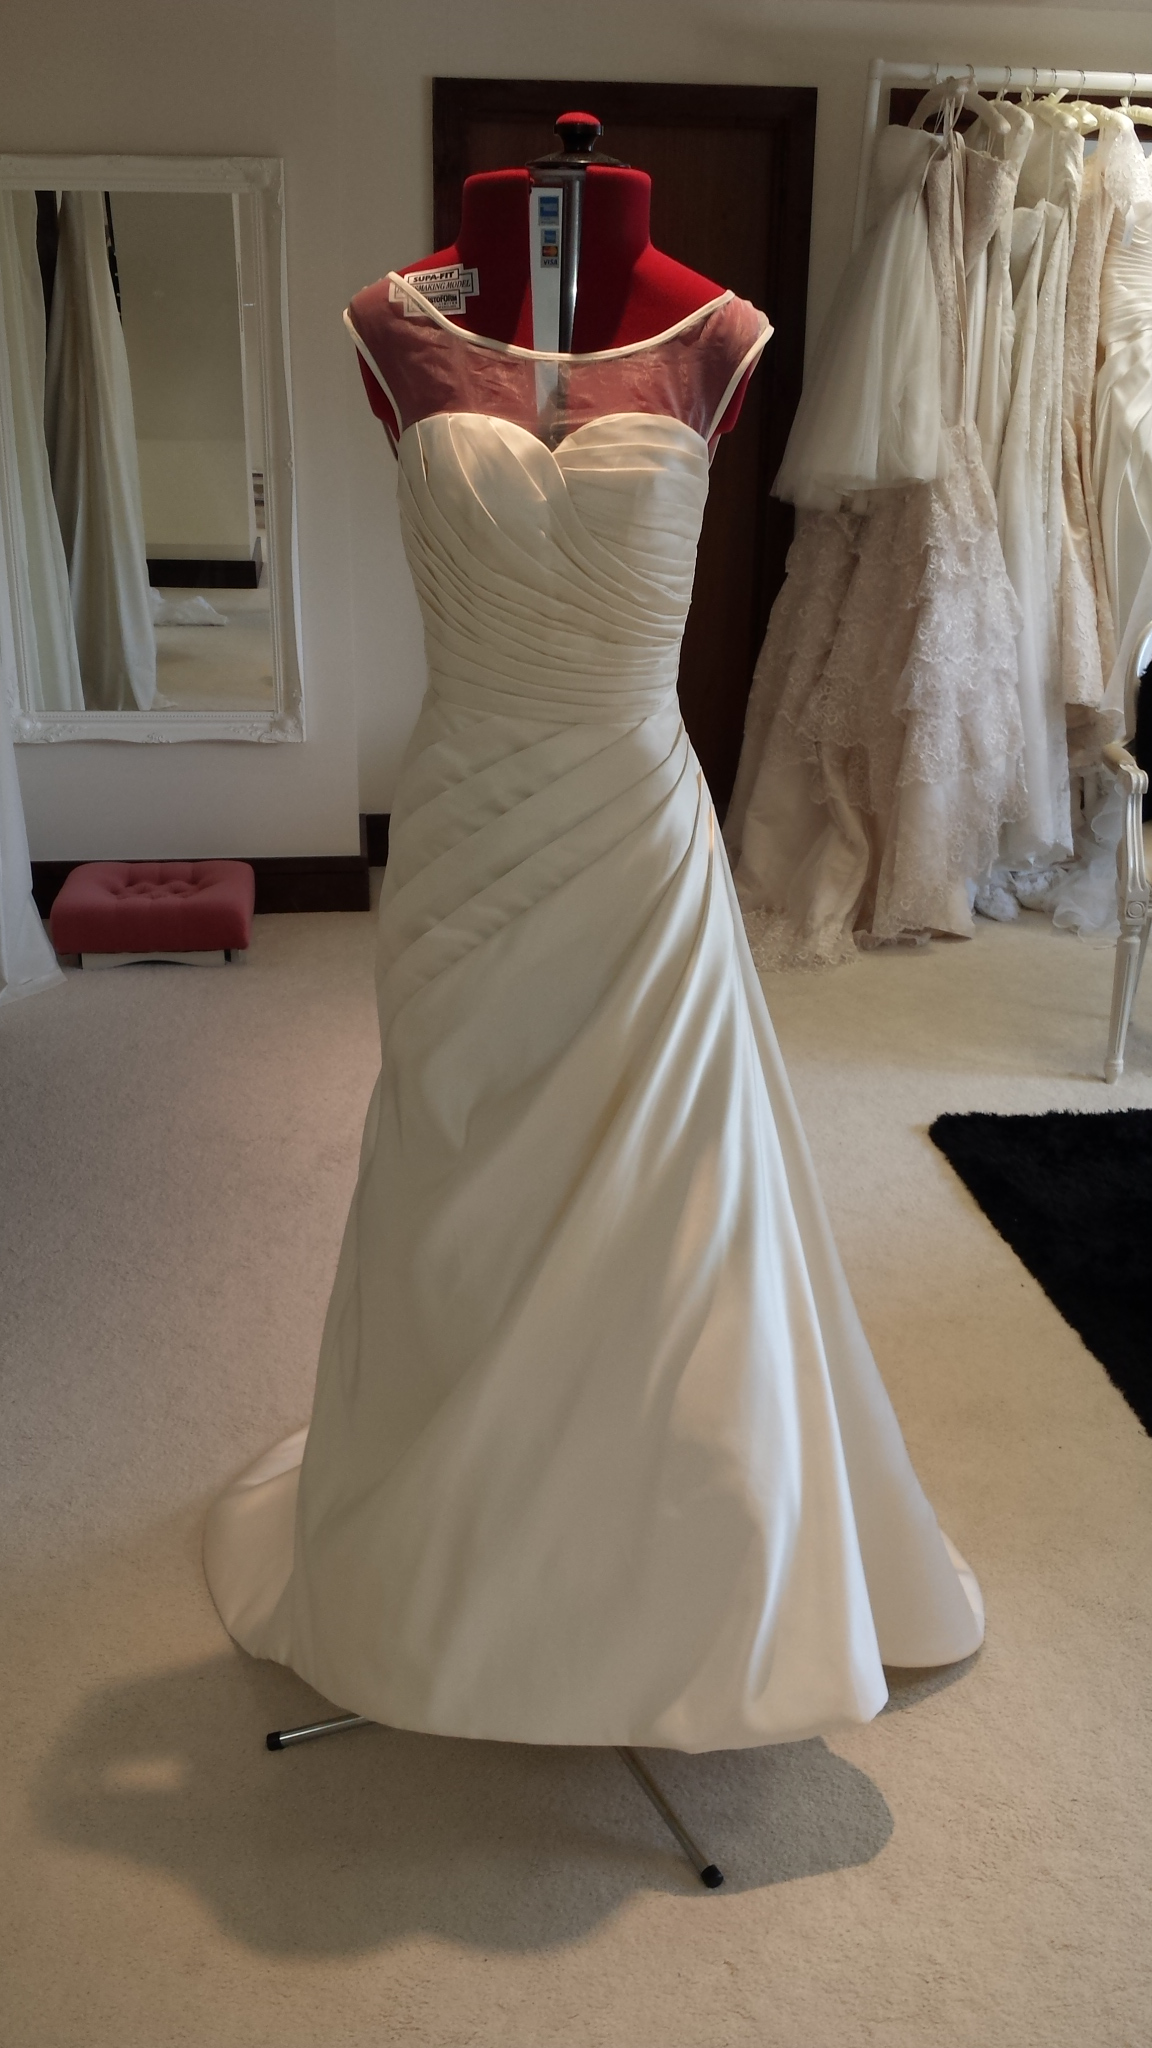 Illusion Neckline Wedding Dress with ruched bodice and A-Line Skirt with Long Train created in Ivory Satin Fabric